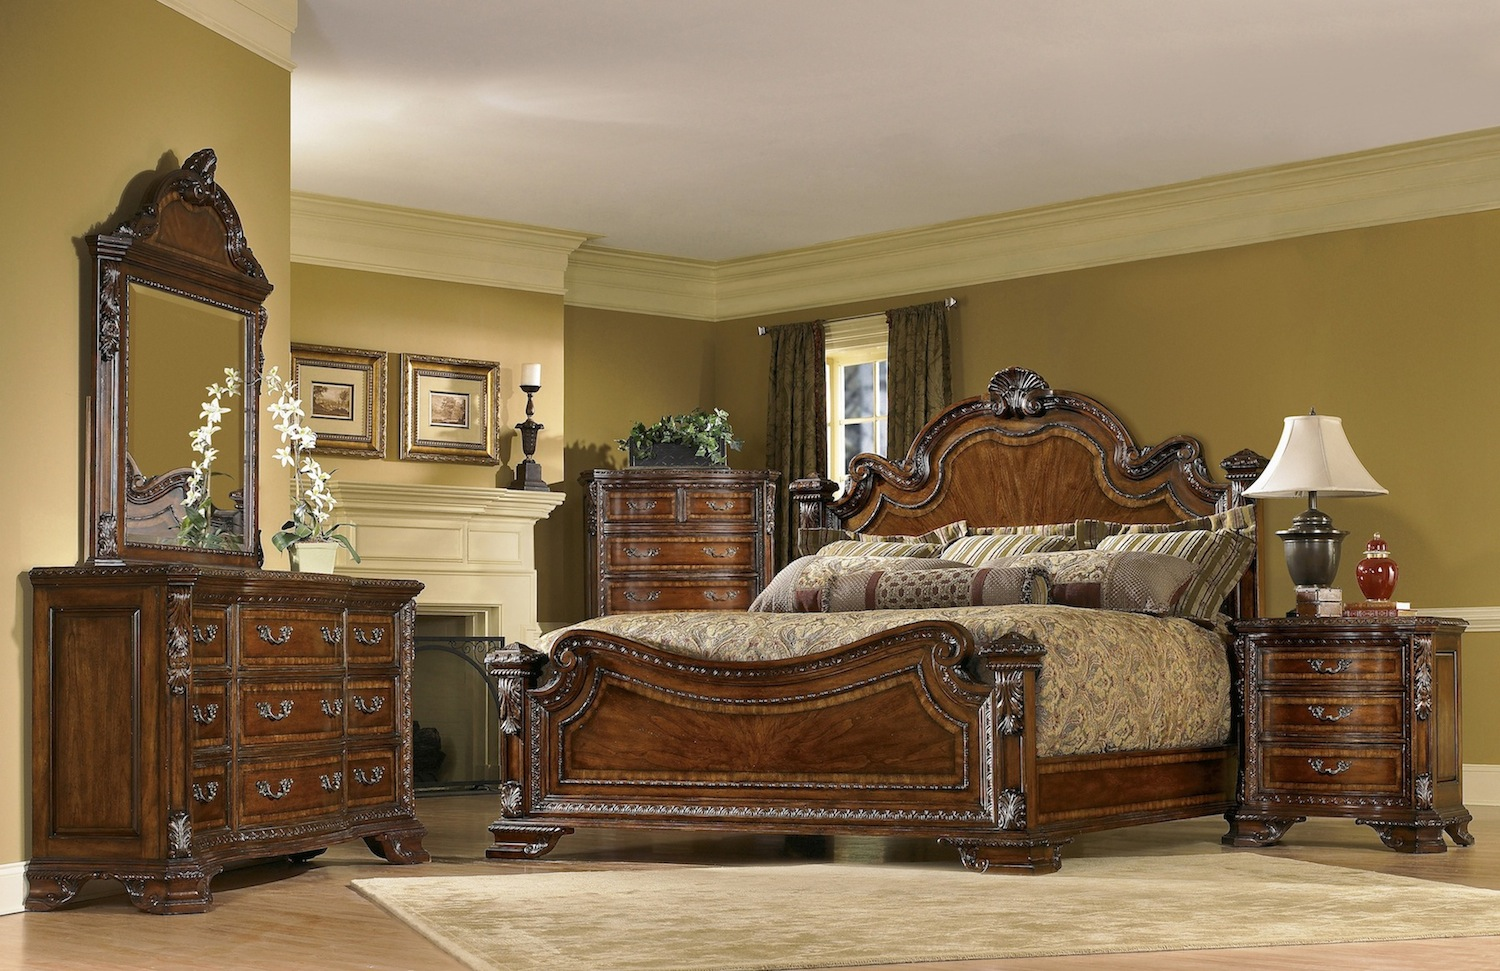 Old world traditional european style bedroom furniture set for Bedroom furniture